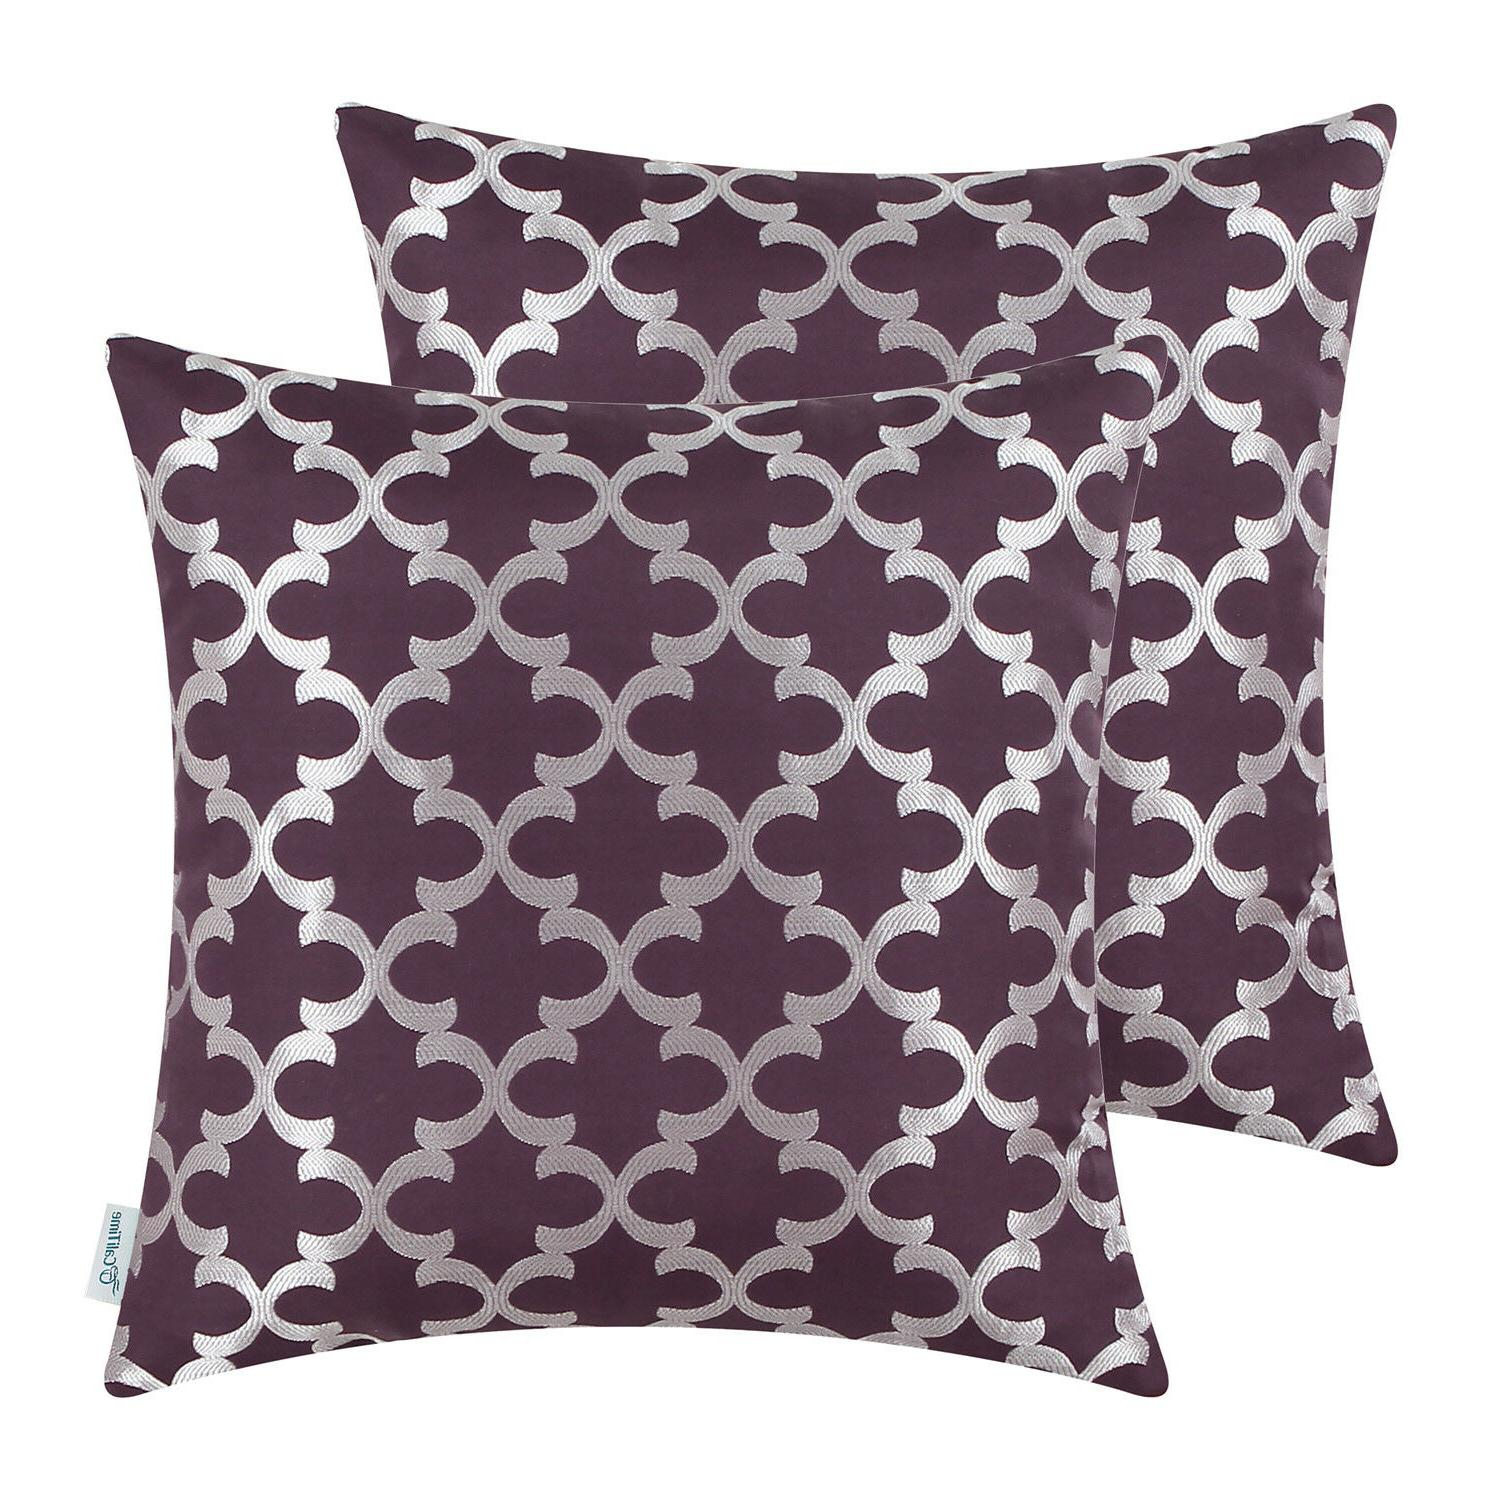 2Pcs CaliTime Cushion Covers Shells Accent Geometric 18x18""